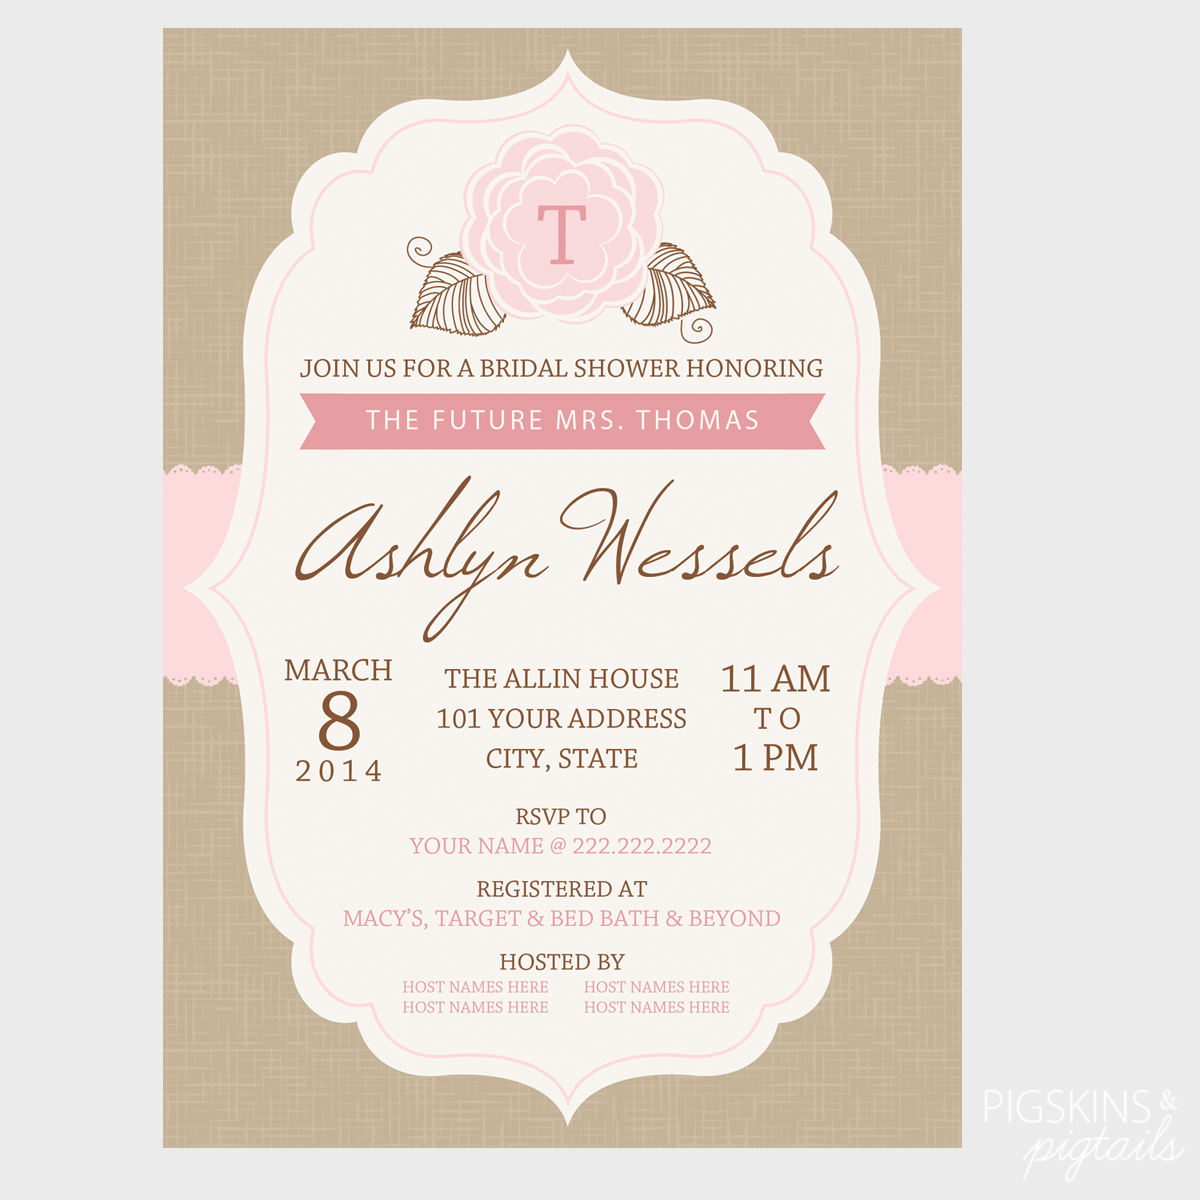 Sample Bridal Shower Invitations could be nice ideas for your invitation template